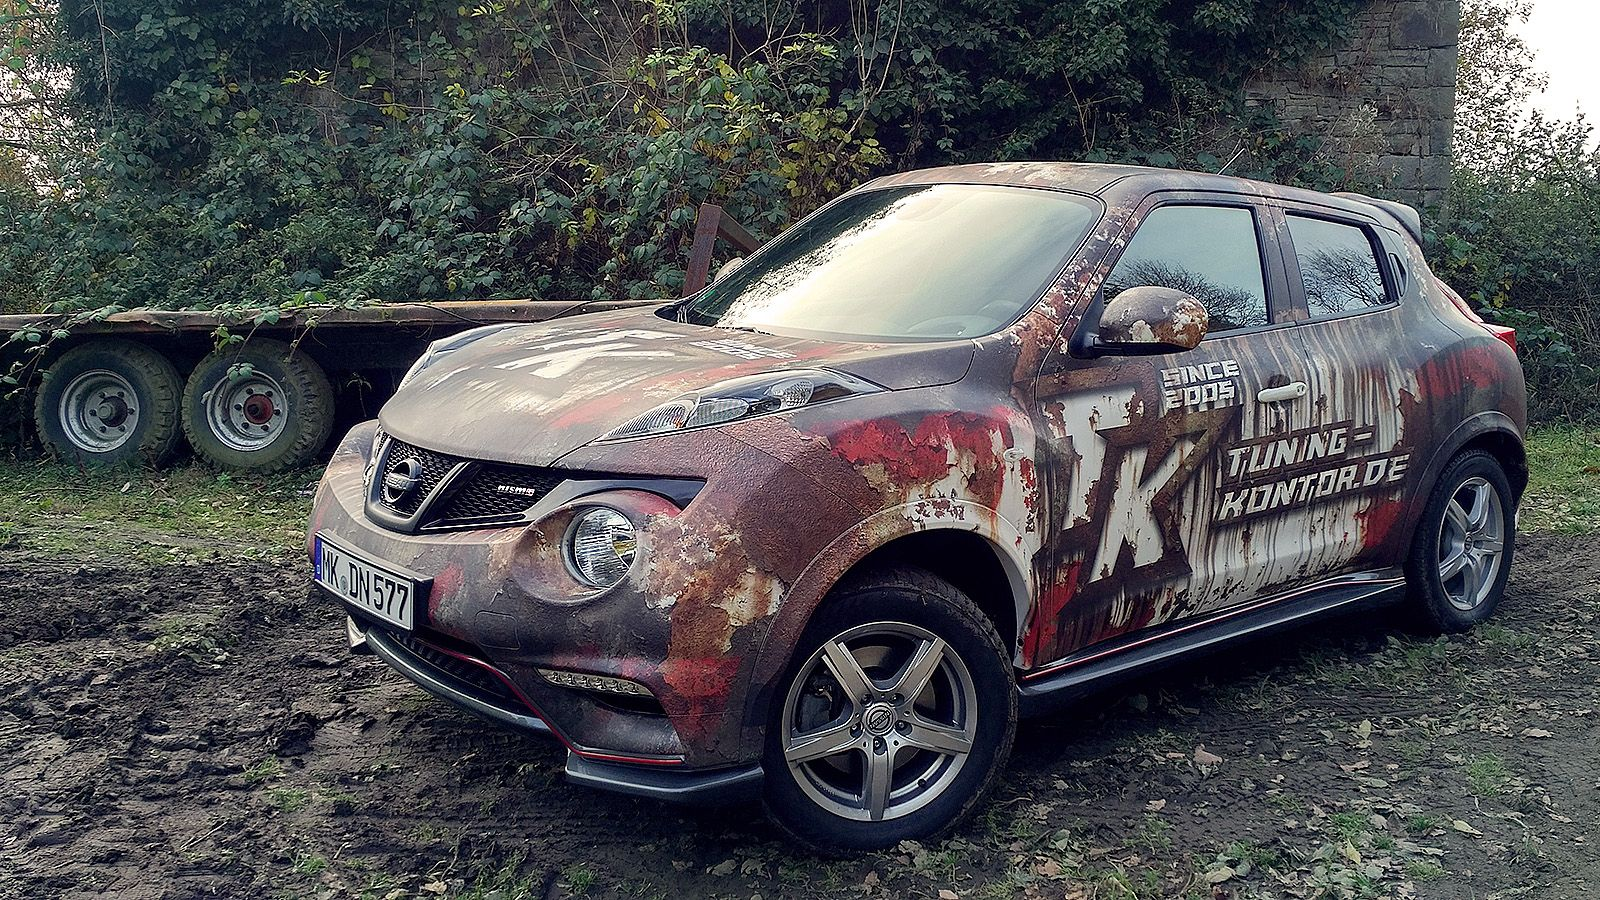 Implemented Another Our Wrap Project   Rusty Nissan Juke